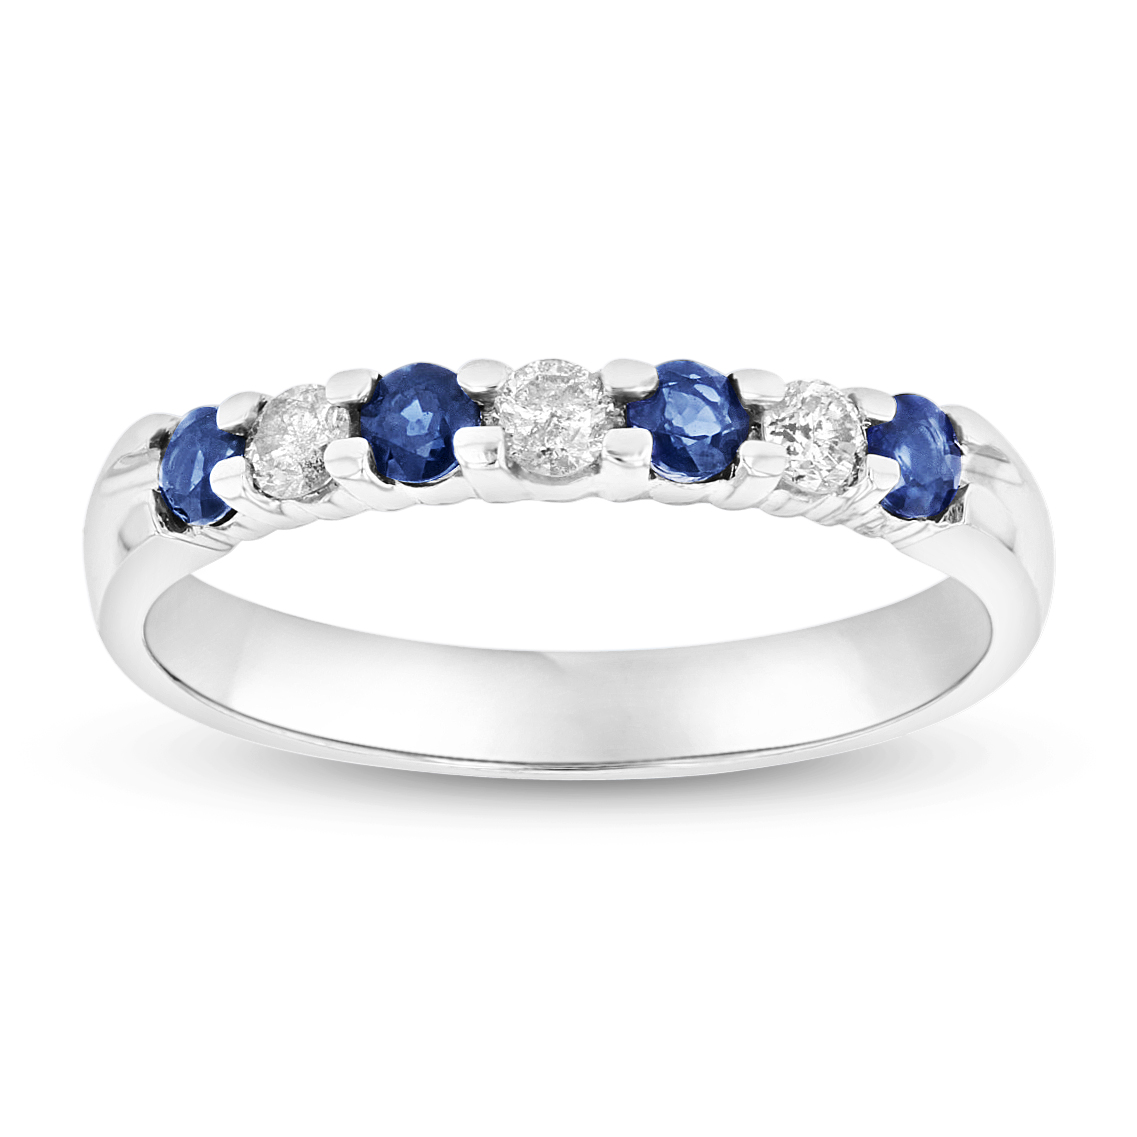 View 14K Gold Ring 0.54ct tw Round Diamonds and Sapphires Prong Set Band